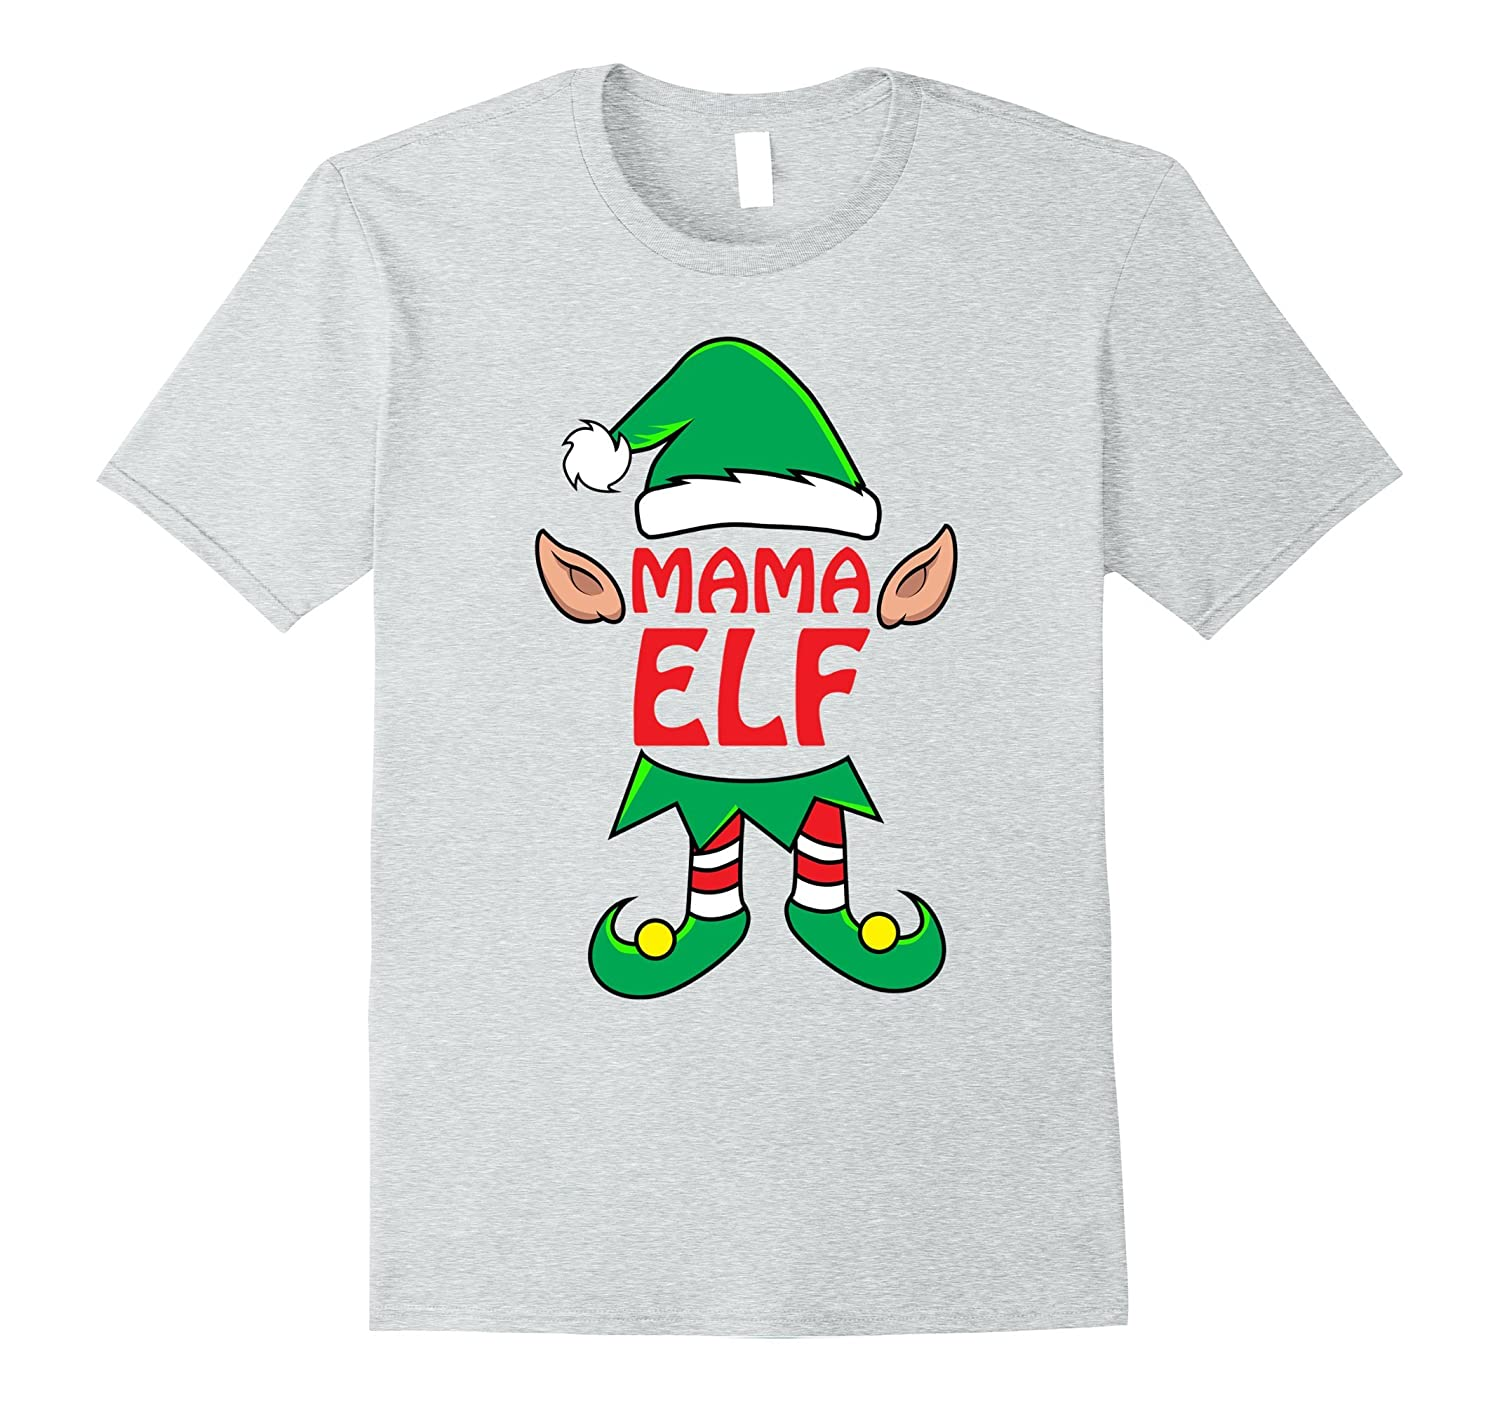 Mama elf shirt dad mom family matching christmas tee anz anztshirt jpg  1500x1403 Mama elf 45f8d4d7c